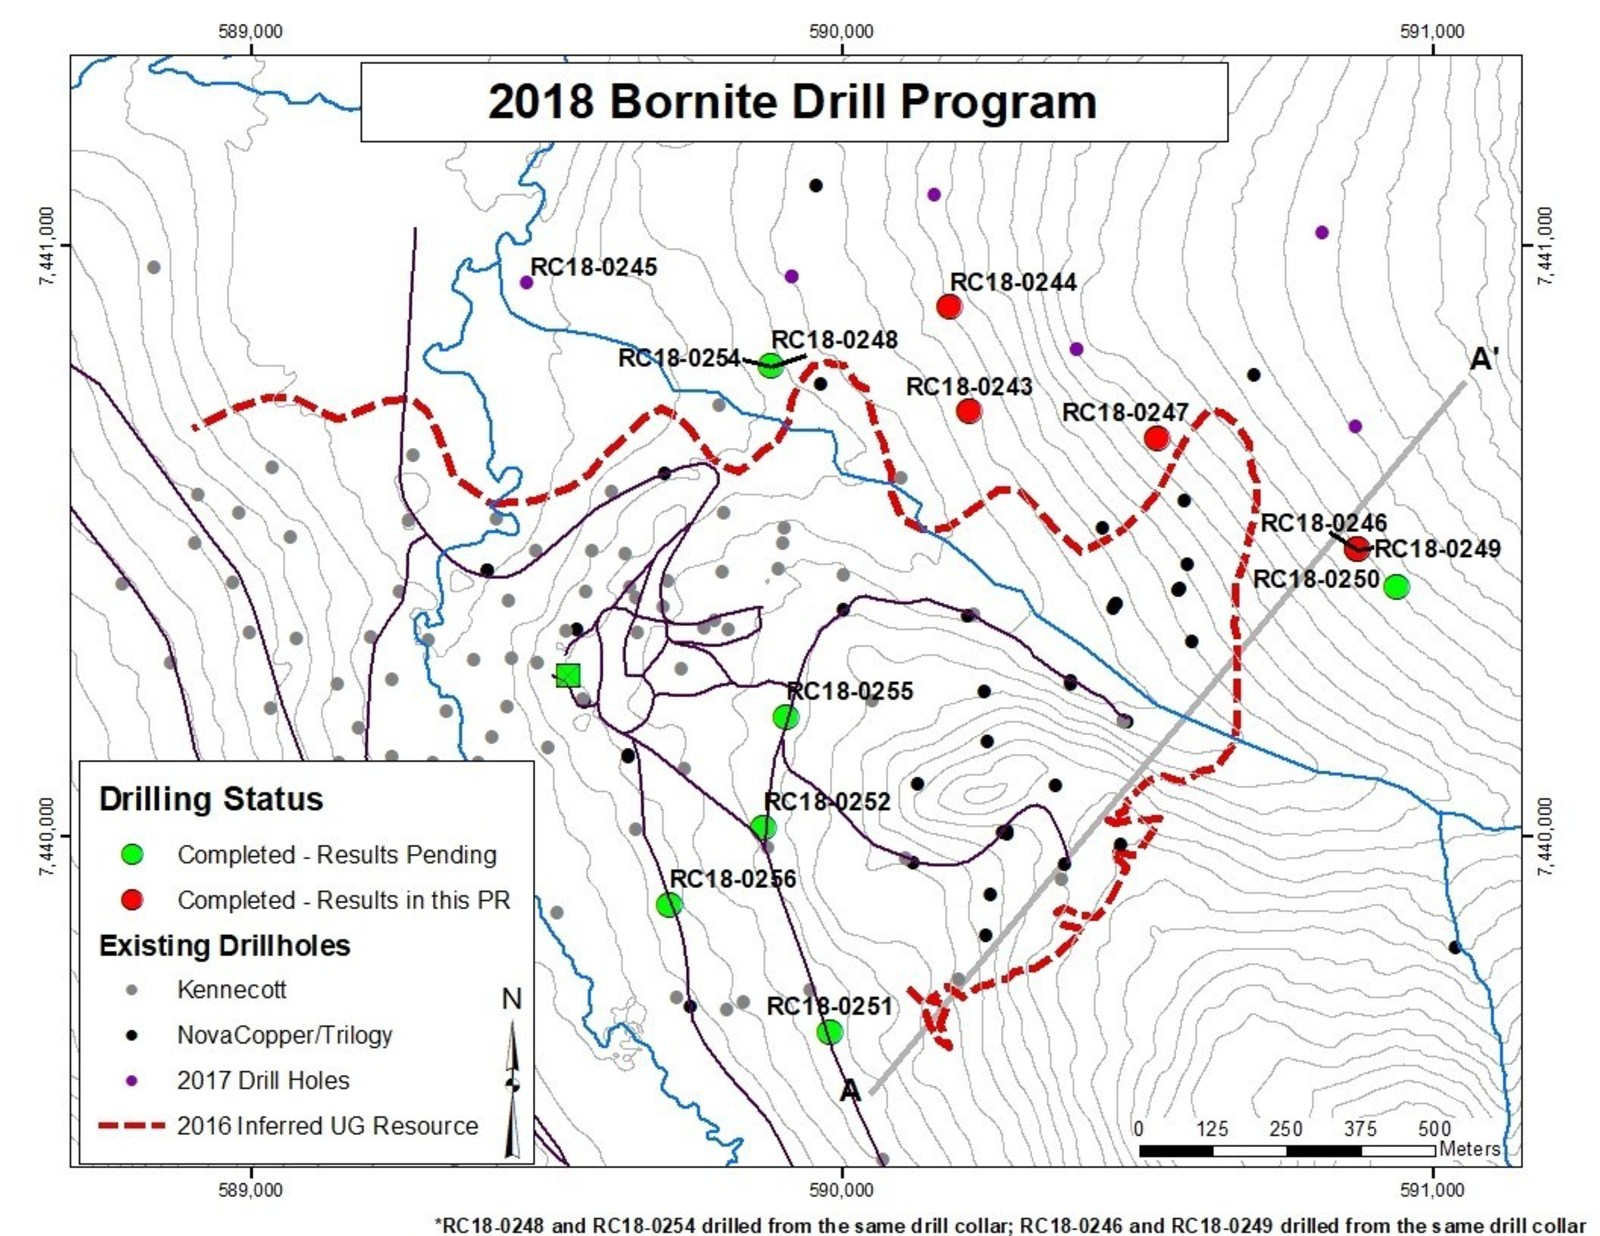 Figure 1- Map Showing Location of 2018 Drilling Program